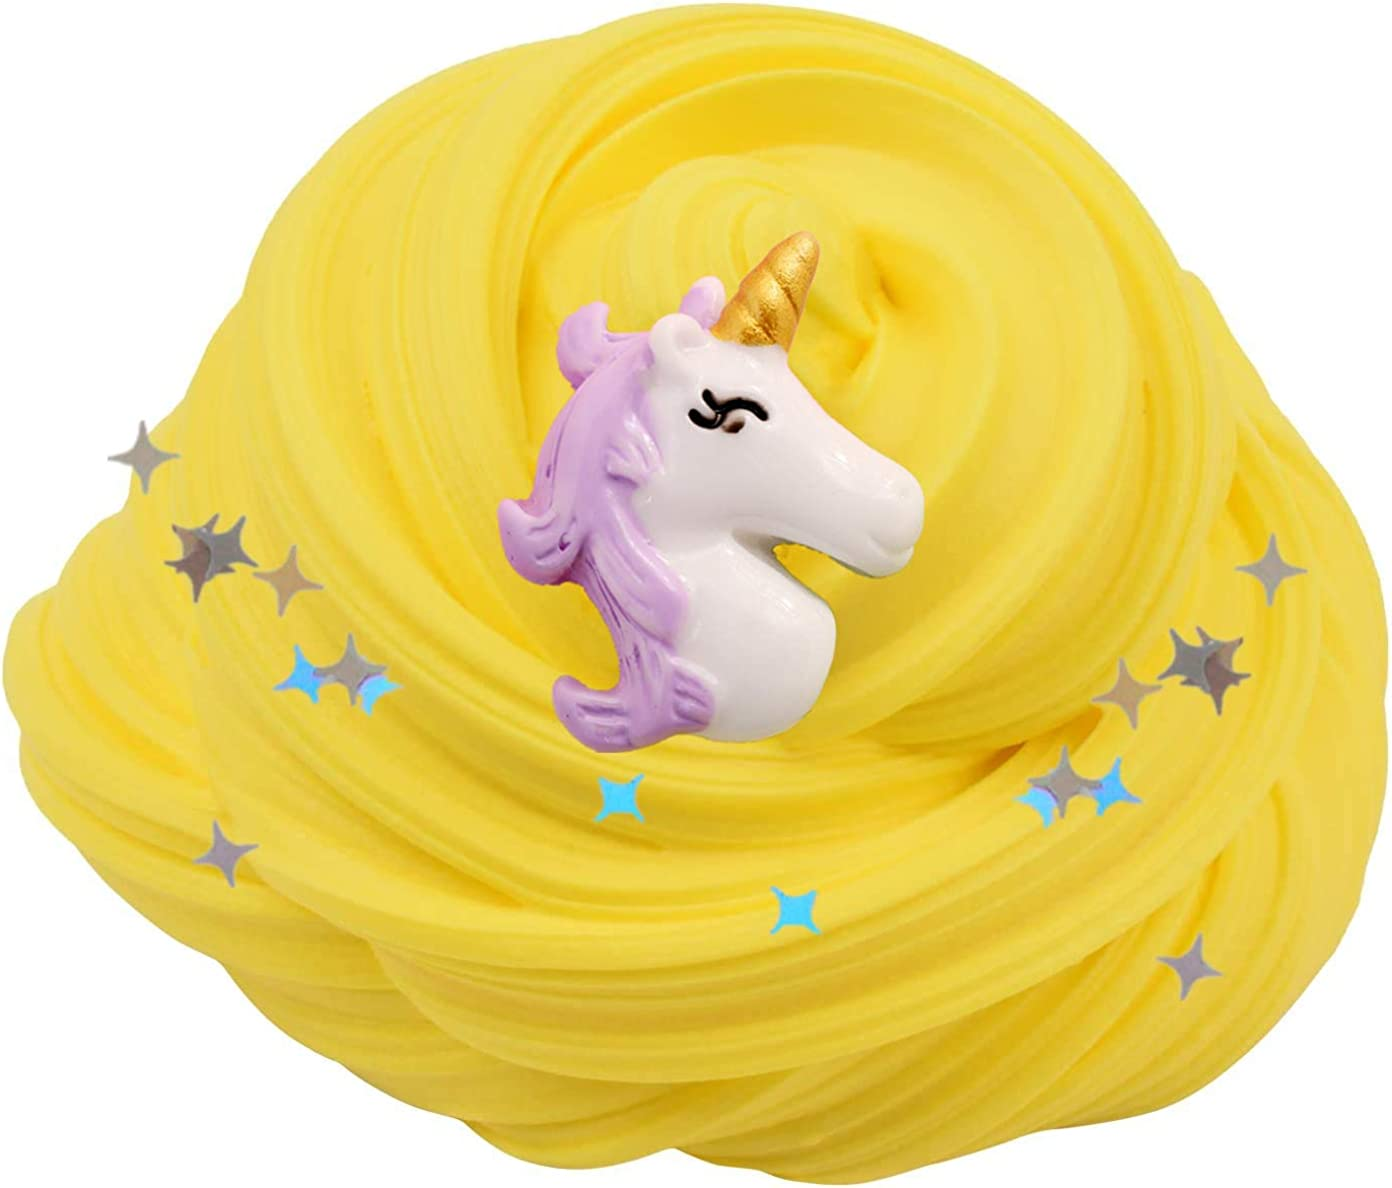 Super Soft and Non-Sticky Fluffy Slime Gift for Boys and Girls 200ML Scented Butter Slime with Unicorn Charms